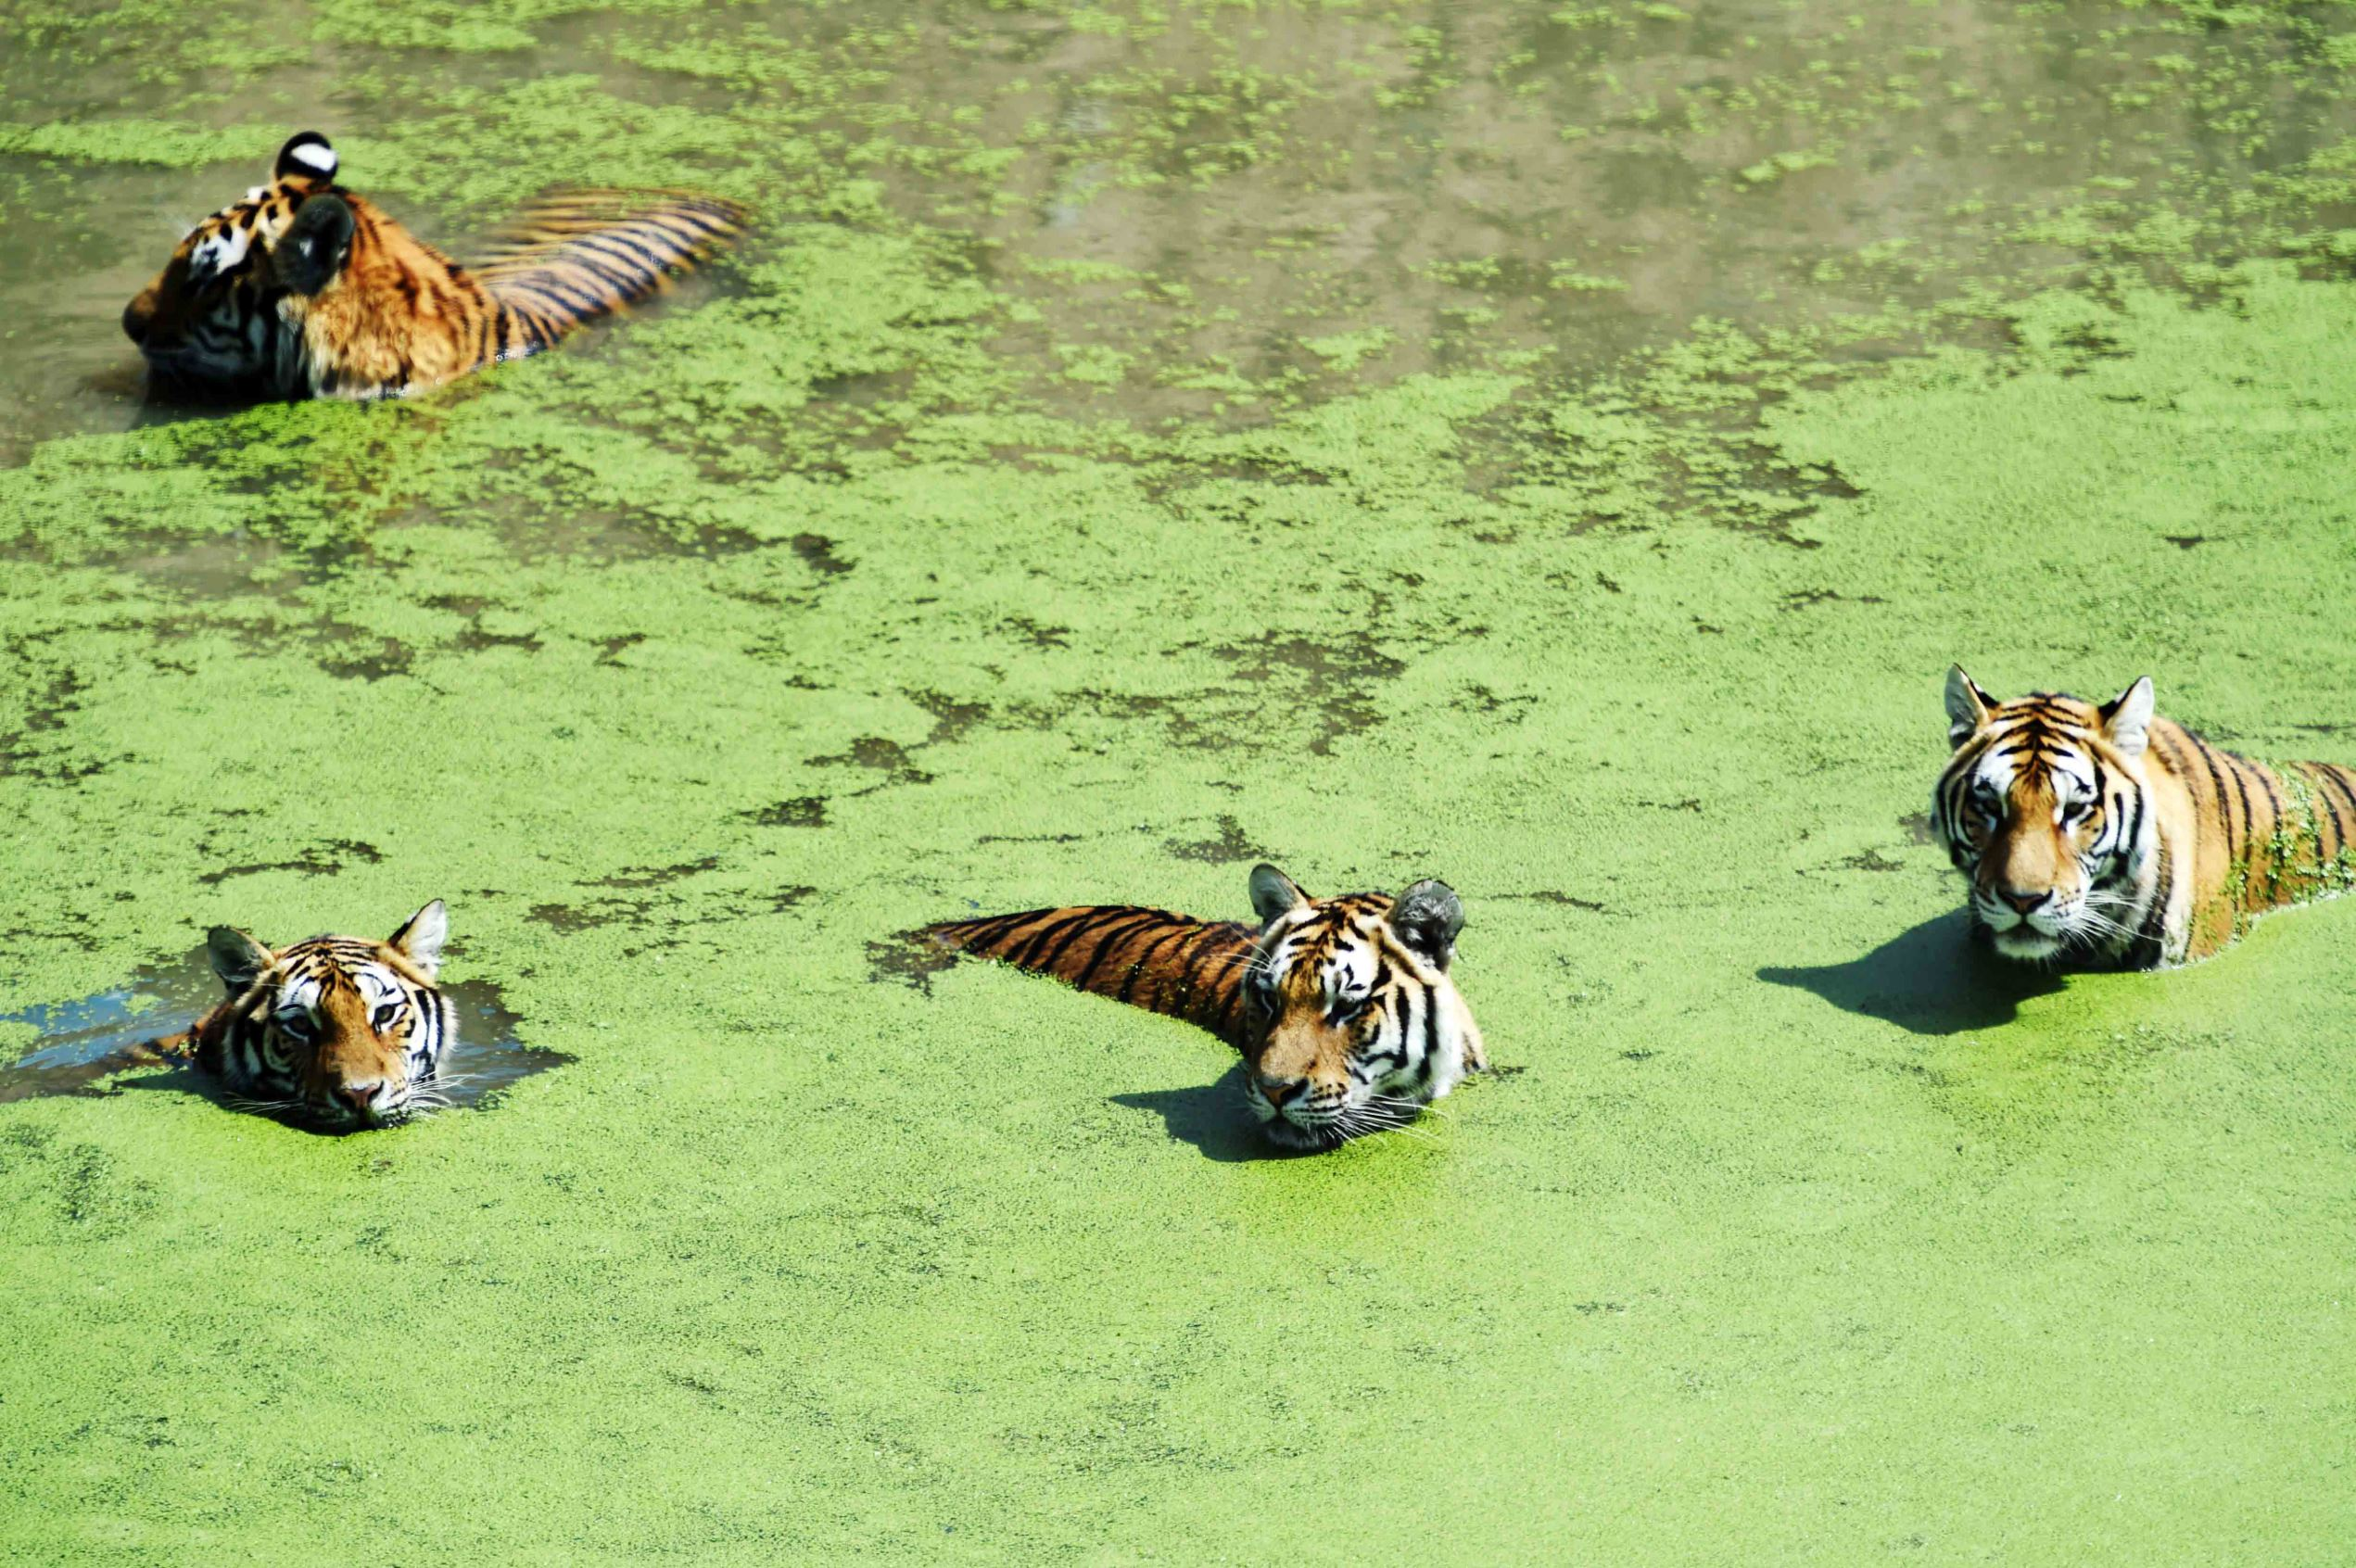 Слайд 5 из 67: Tigers at Harbin Zoo, China - 04 Aug 2016 Siberian tigers cool themselves off in a pond amid summer heat at a zoo in Harbin, capital of northeast China's Heilongjiang Province